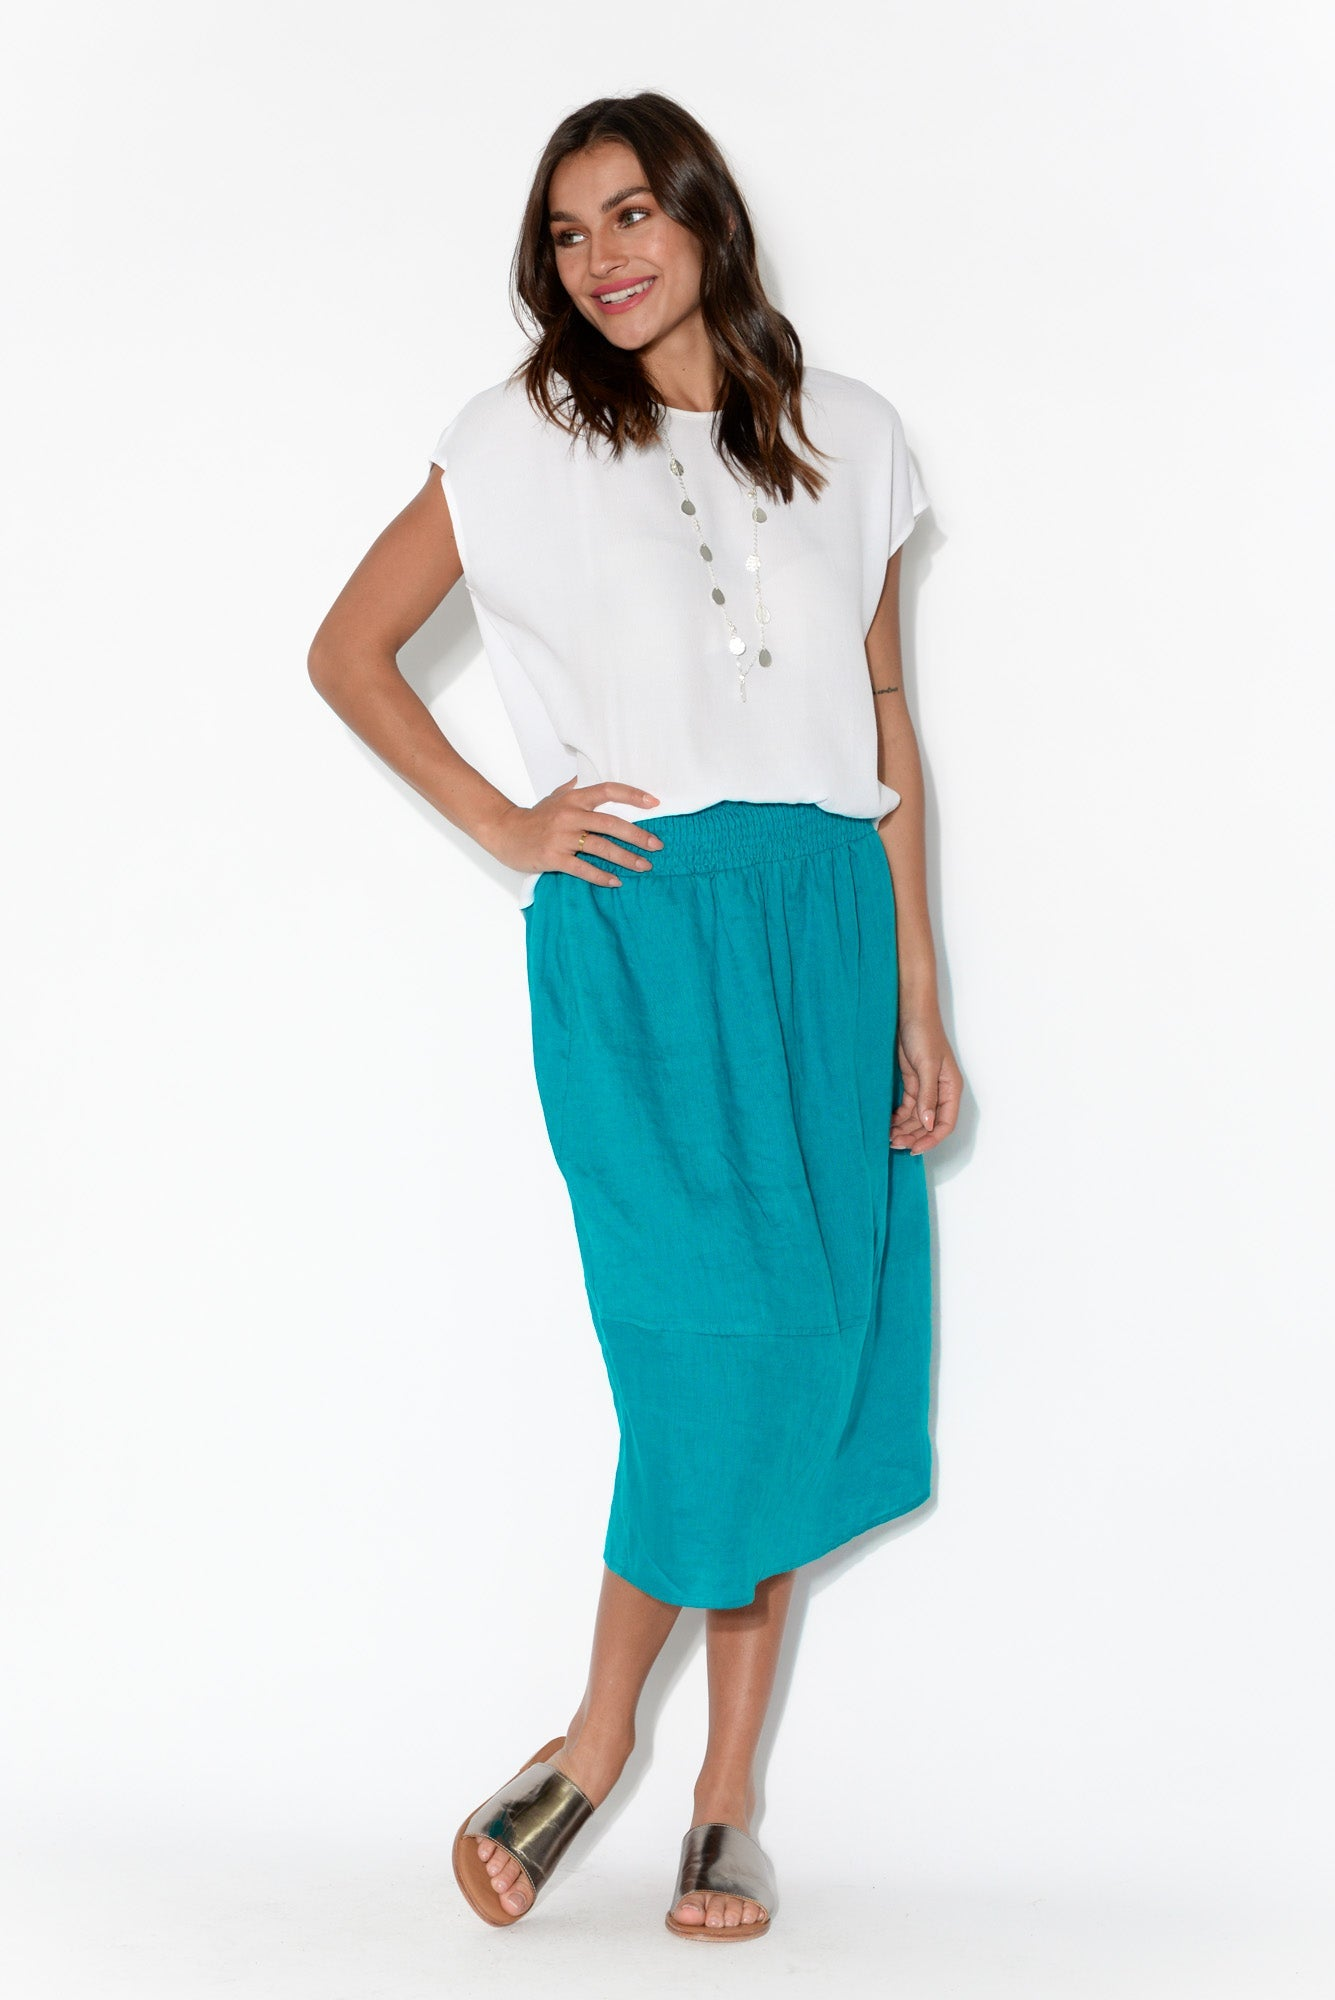 Tribu Teal Linen Skirt